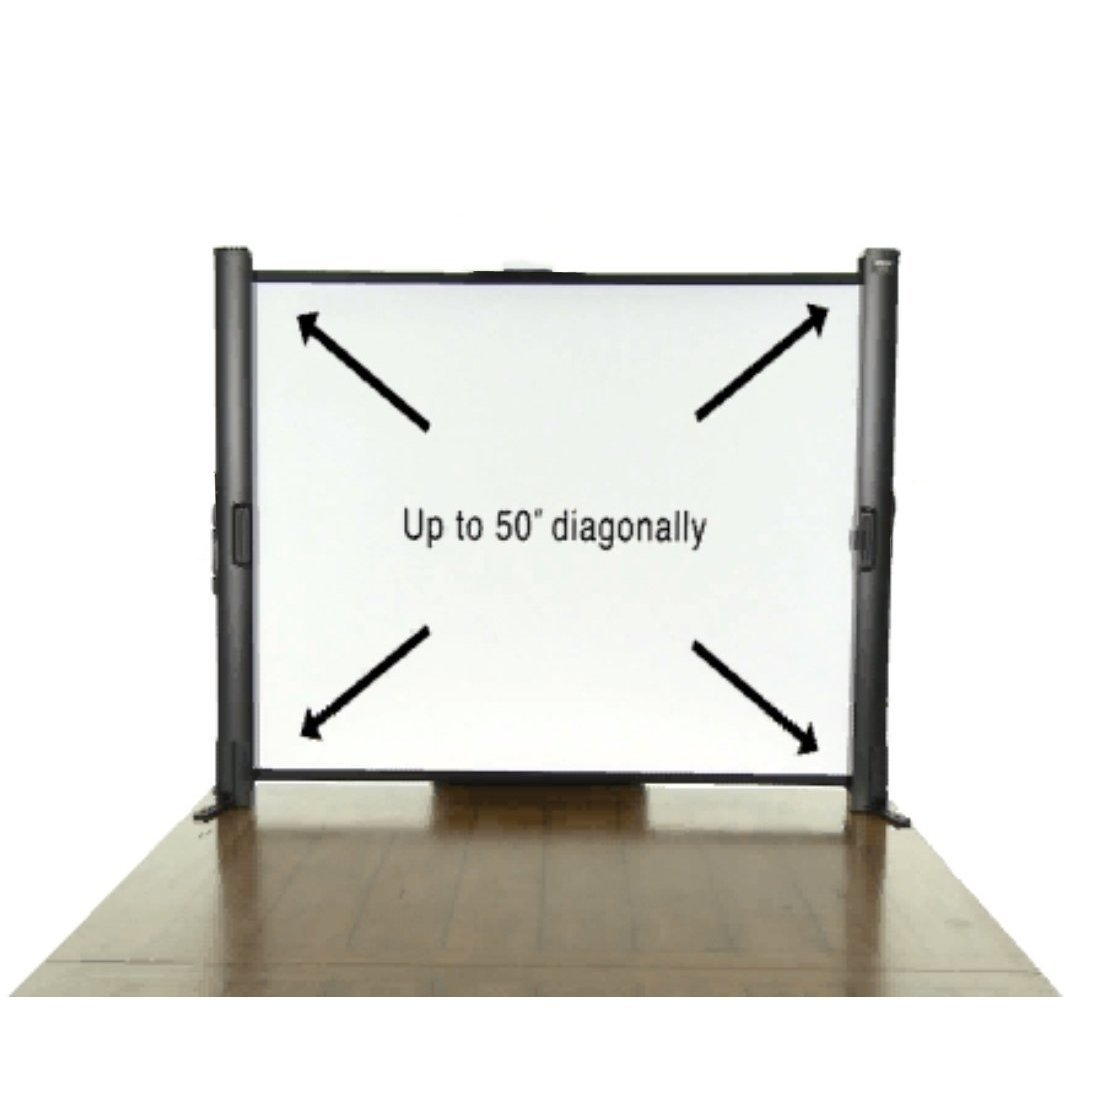 Epson ES1000 Ultra Portable Tabletop Projection Screen (V12H002S4Y) Epson Consumables